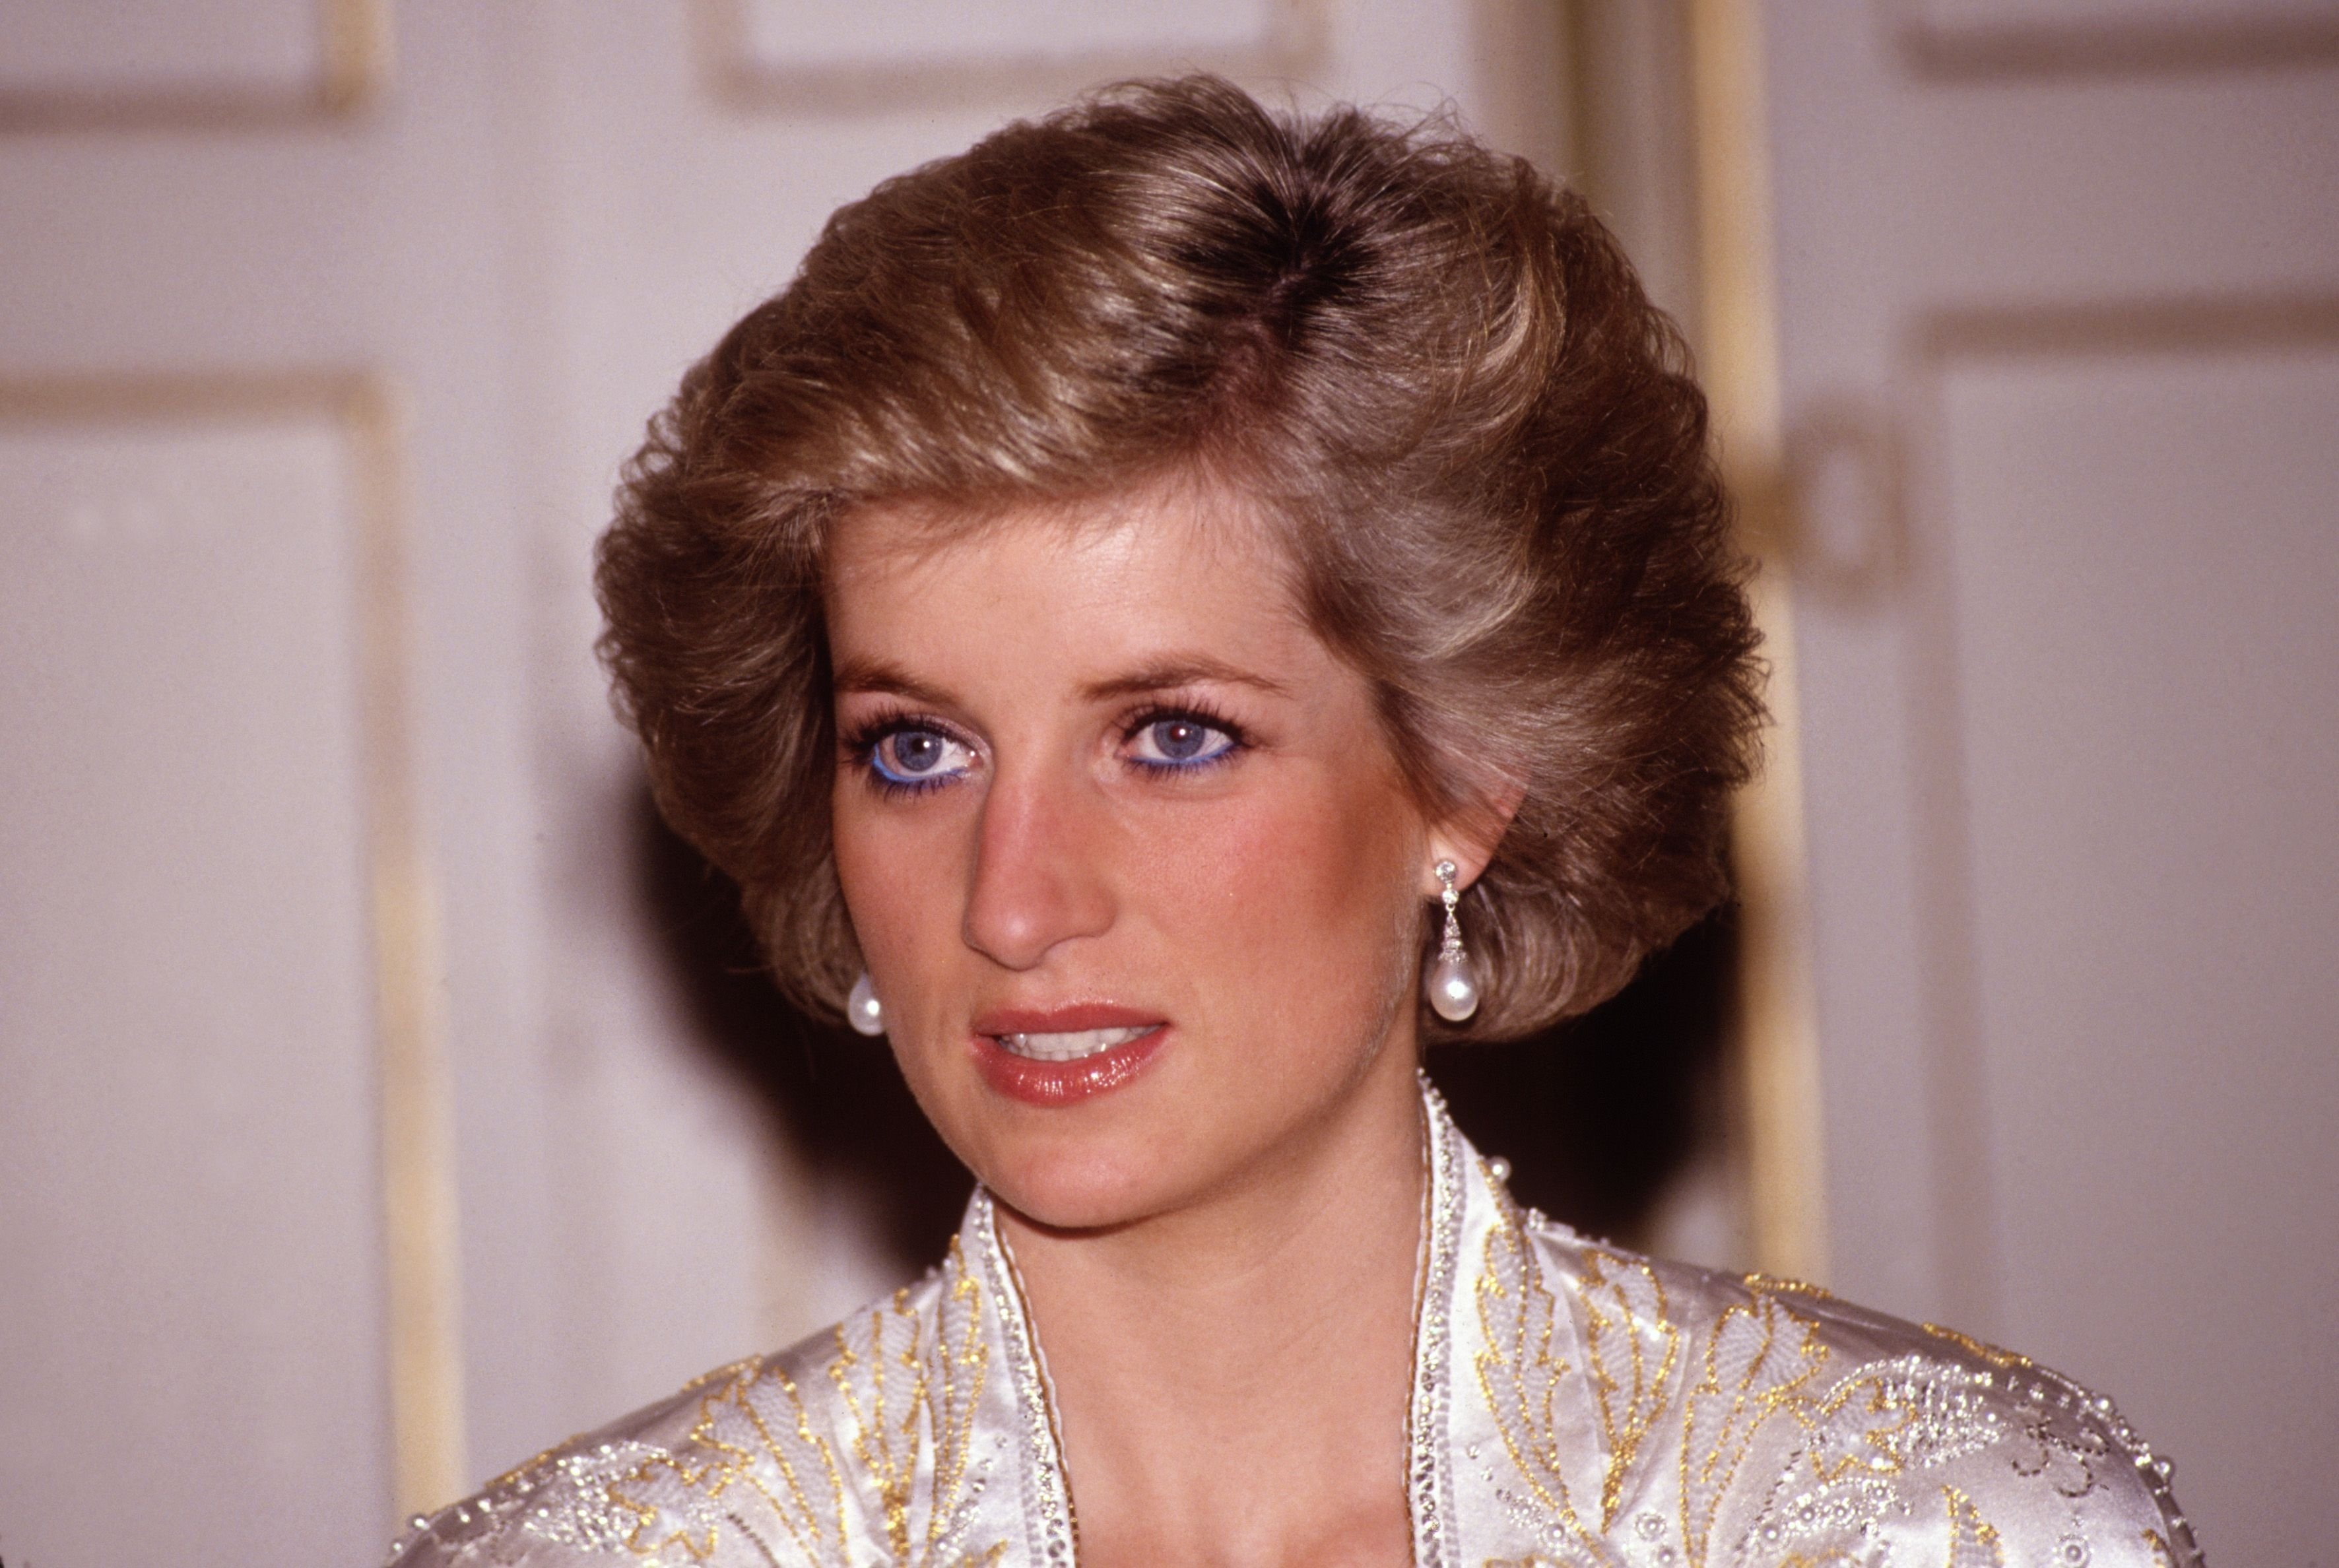 Princess Diana at a dinner given by President Mitterand on November 1, 1988, at the Elysee Palace in Paris, France   Photo: David Levenson/Getty Images